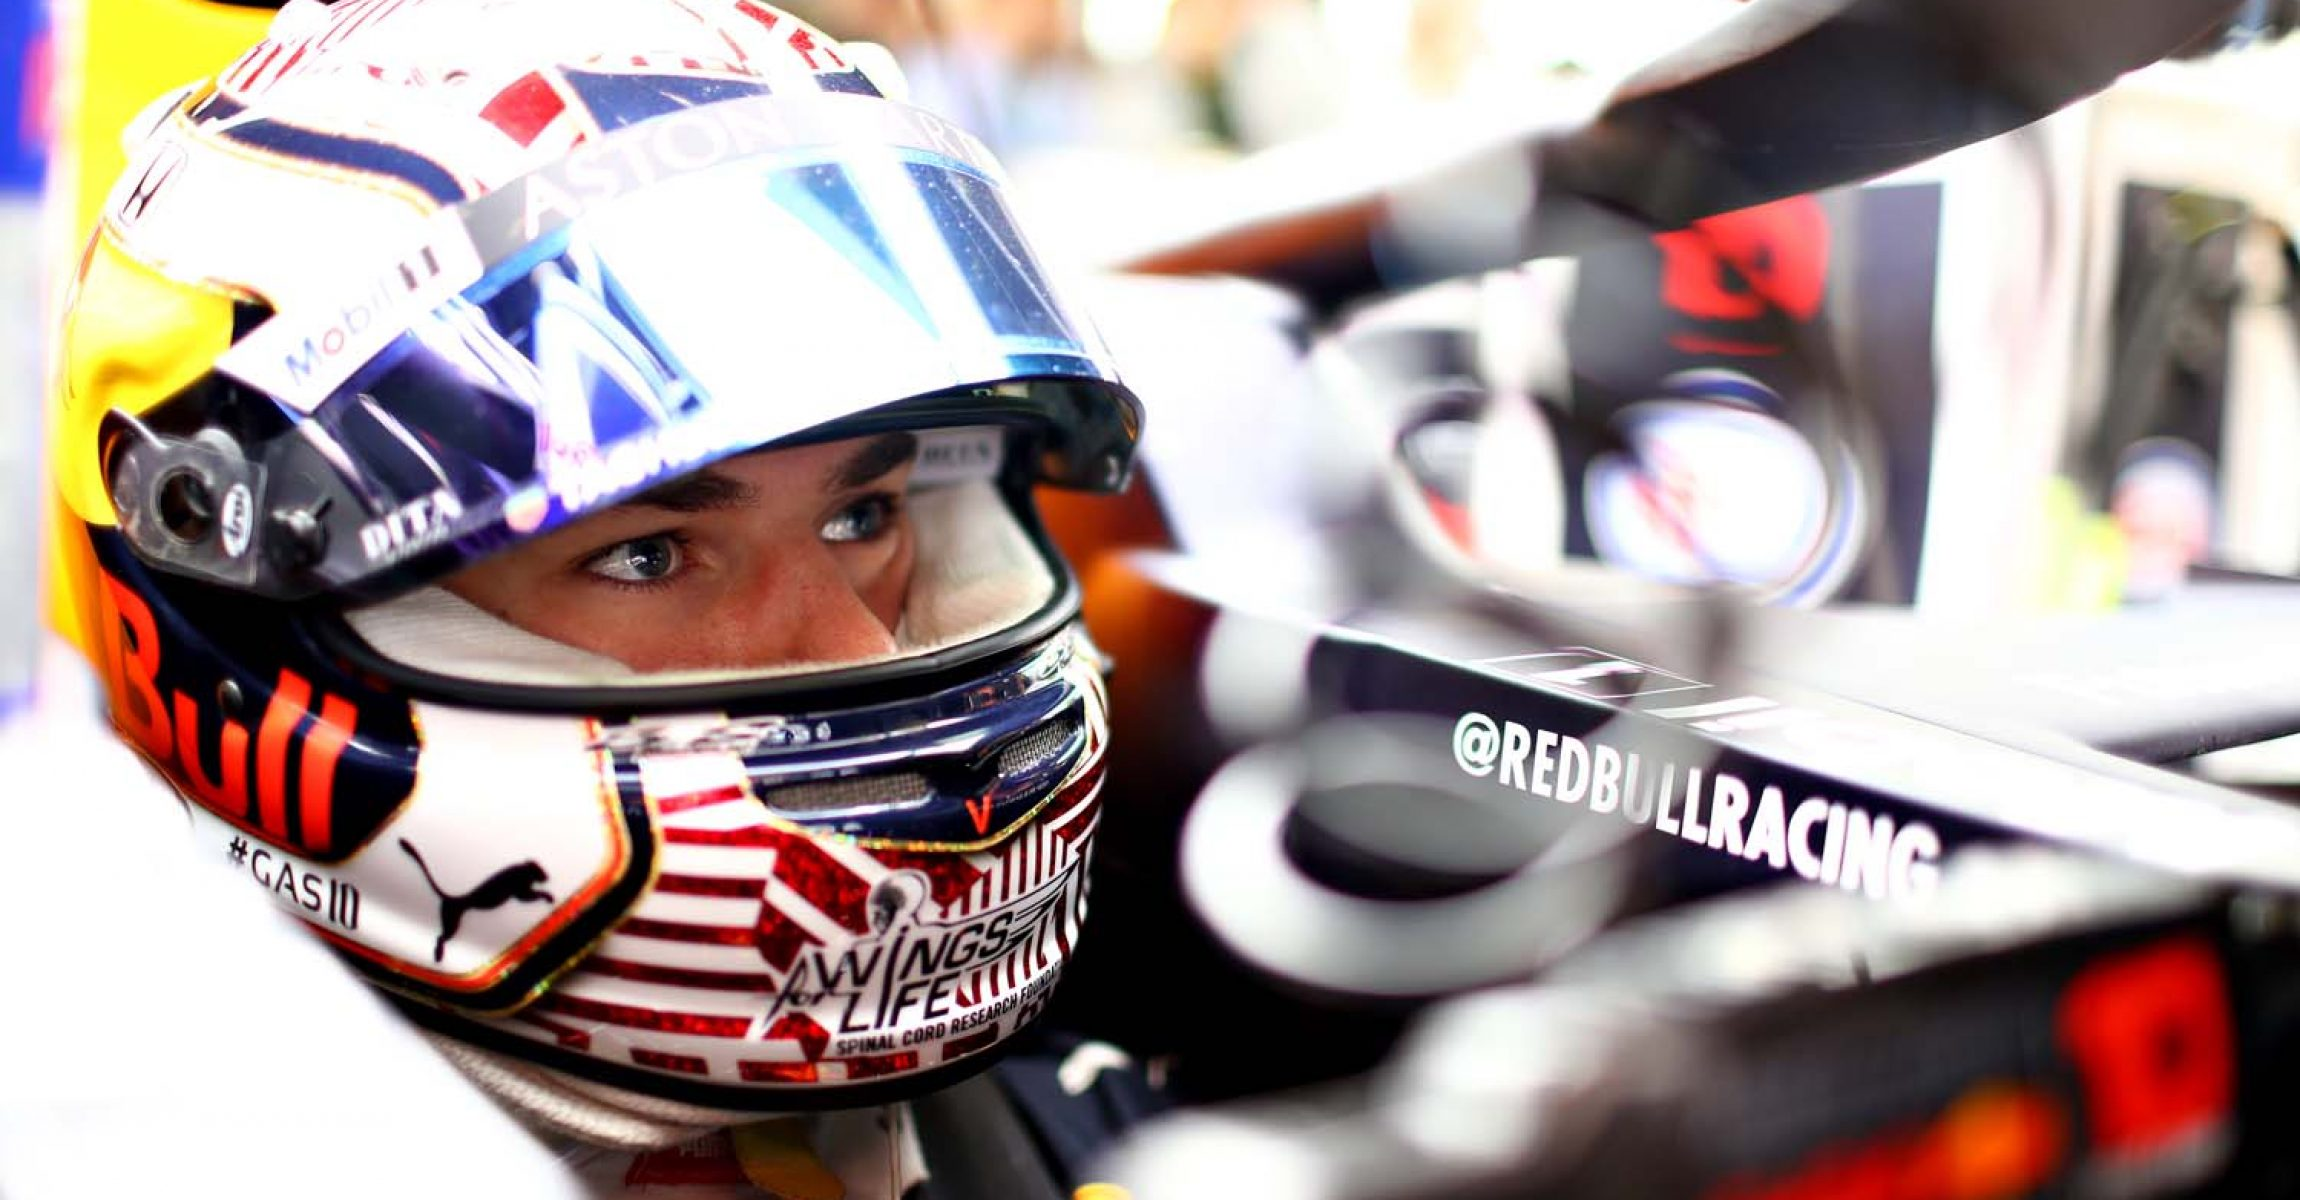 BARCELONA, SPAIN - MAY 10: Pierre Gasly of France and Red Bull Racing prepares to drive in the garage during practice for the F1 Grand Prix of Spain at Circuit de Barcelona-Catalunya on May 10, 2019 in Barcelona, Spain. (Photo by Mark Thompson/Getty Images) // Getty Images / Red Bull Content Pool  // AP-1Z9UE9M9W2111 // Usage for editorial use only // Please go to www.redbullcontentpool.com for further information. //